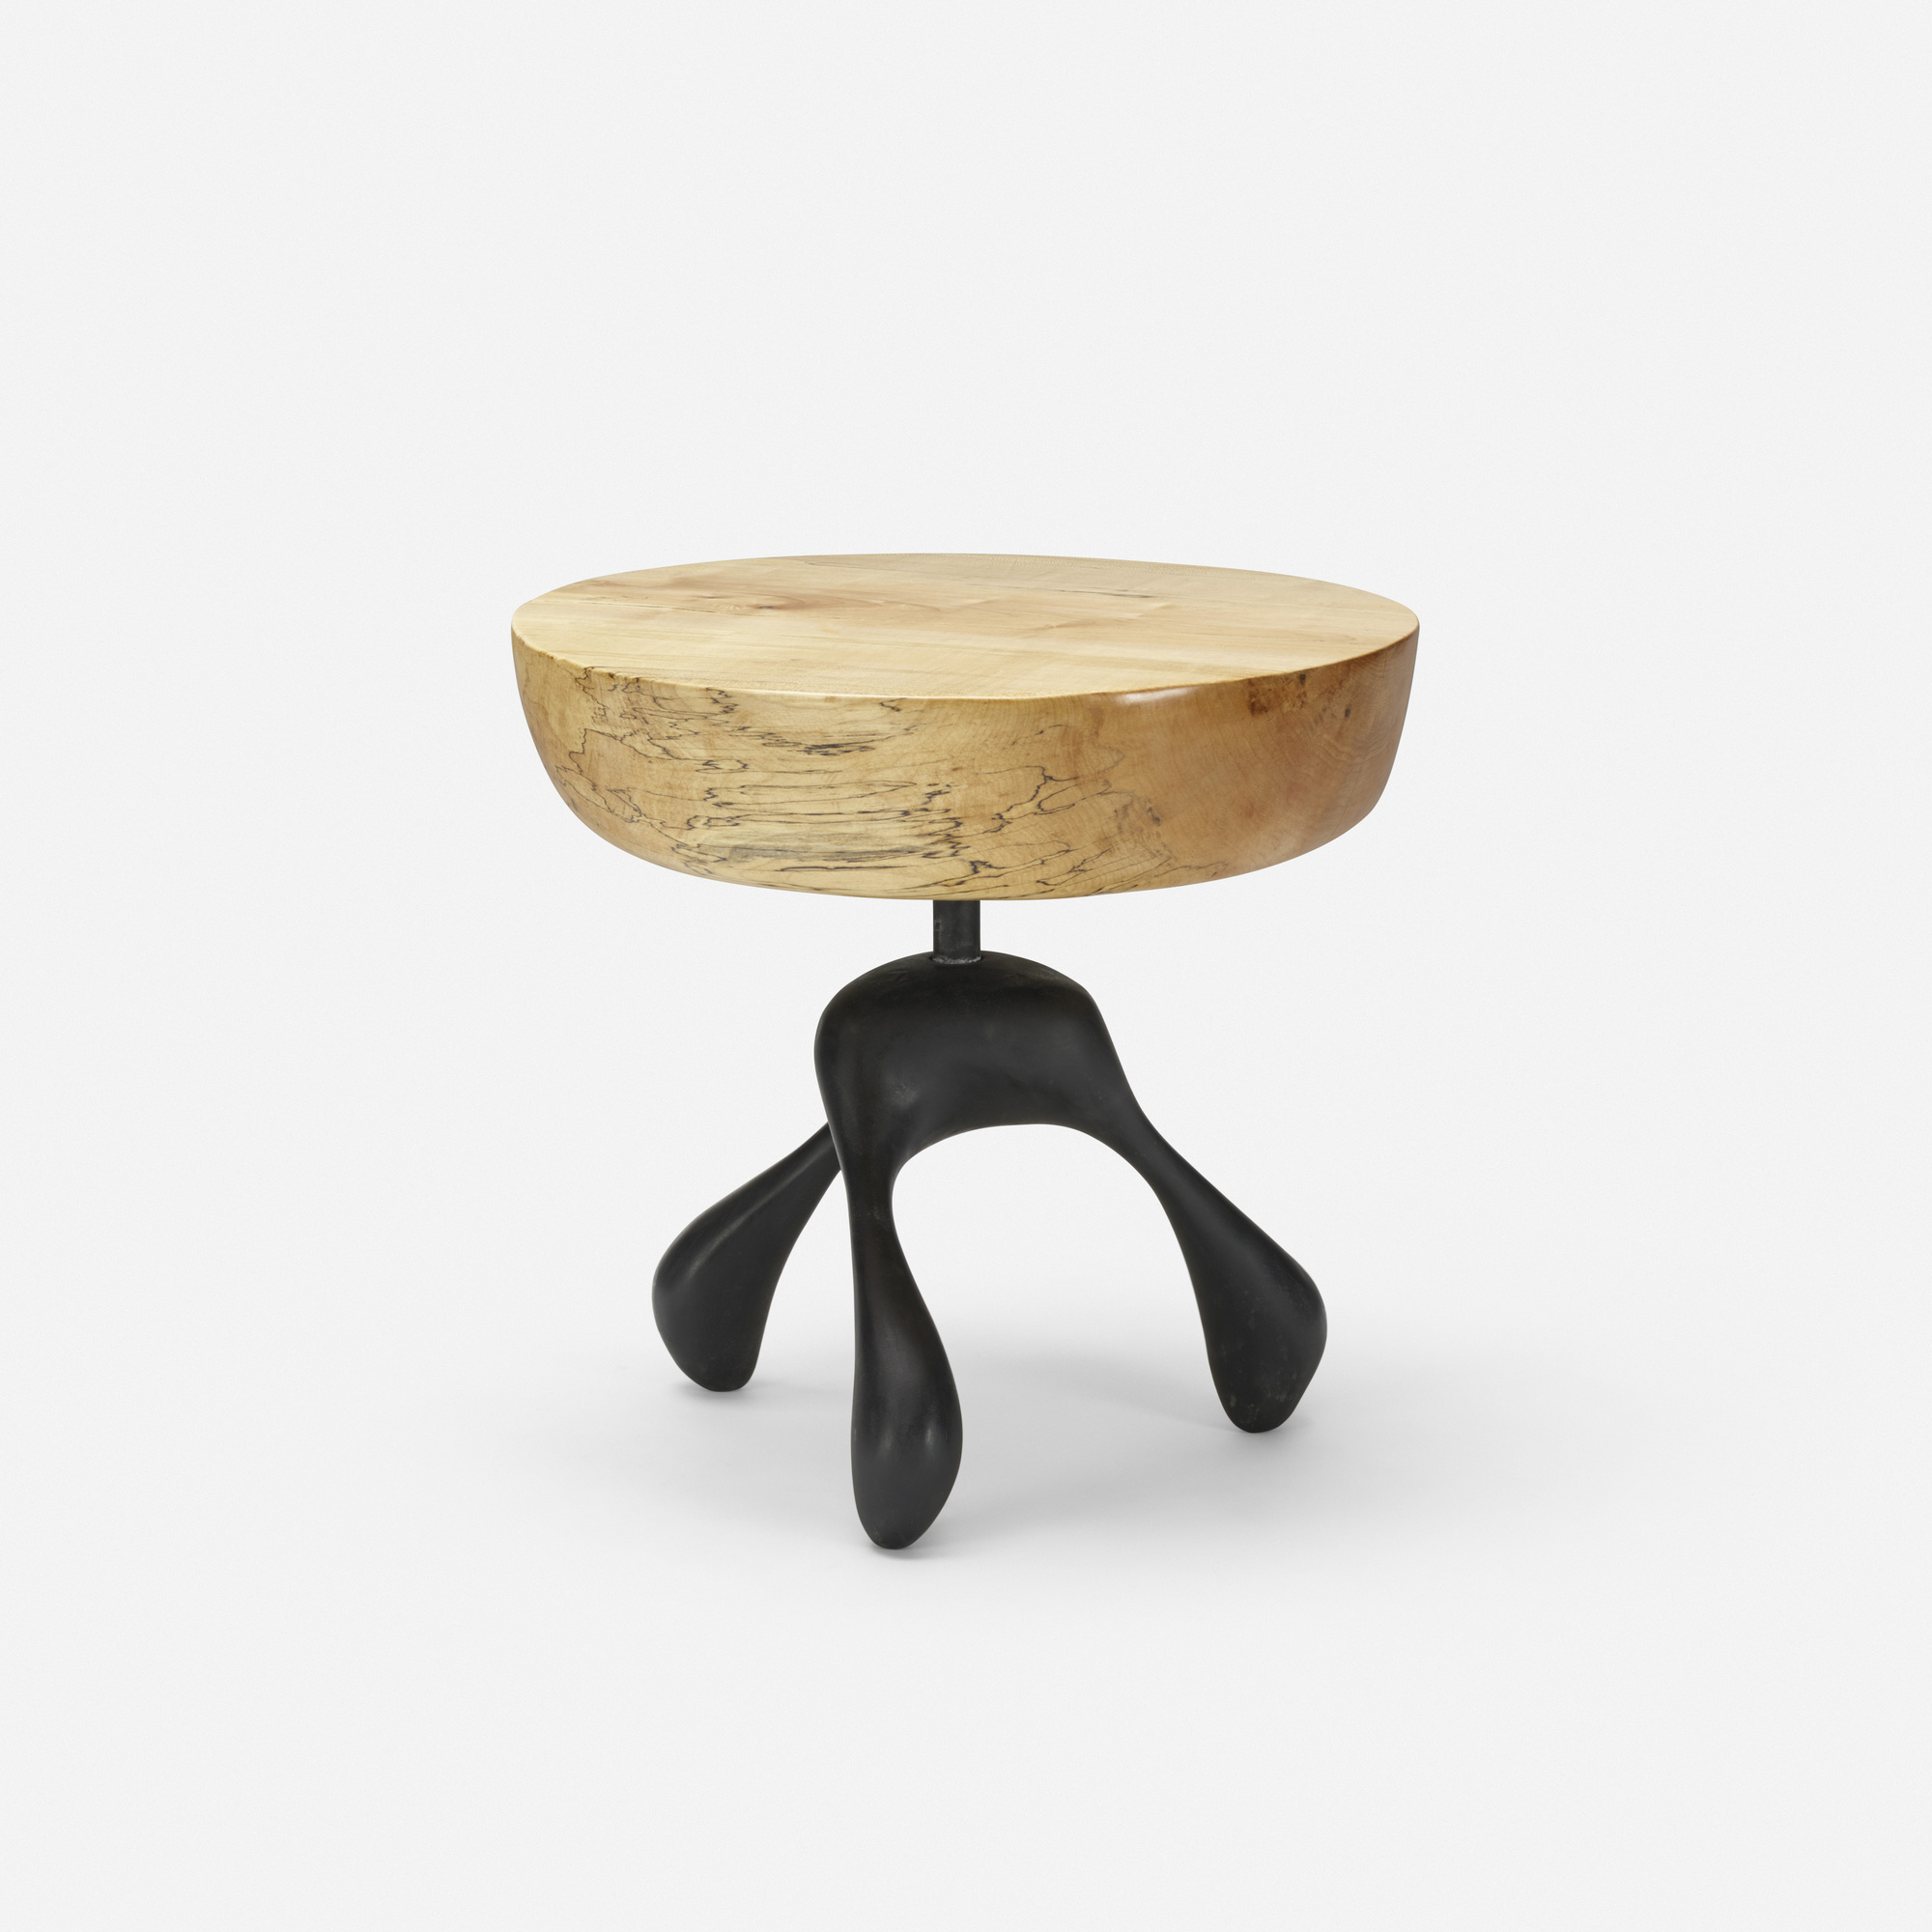 191: Jordan Mozer / prototype Musashi occasional table (1 of 2)